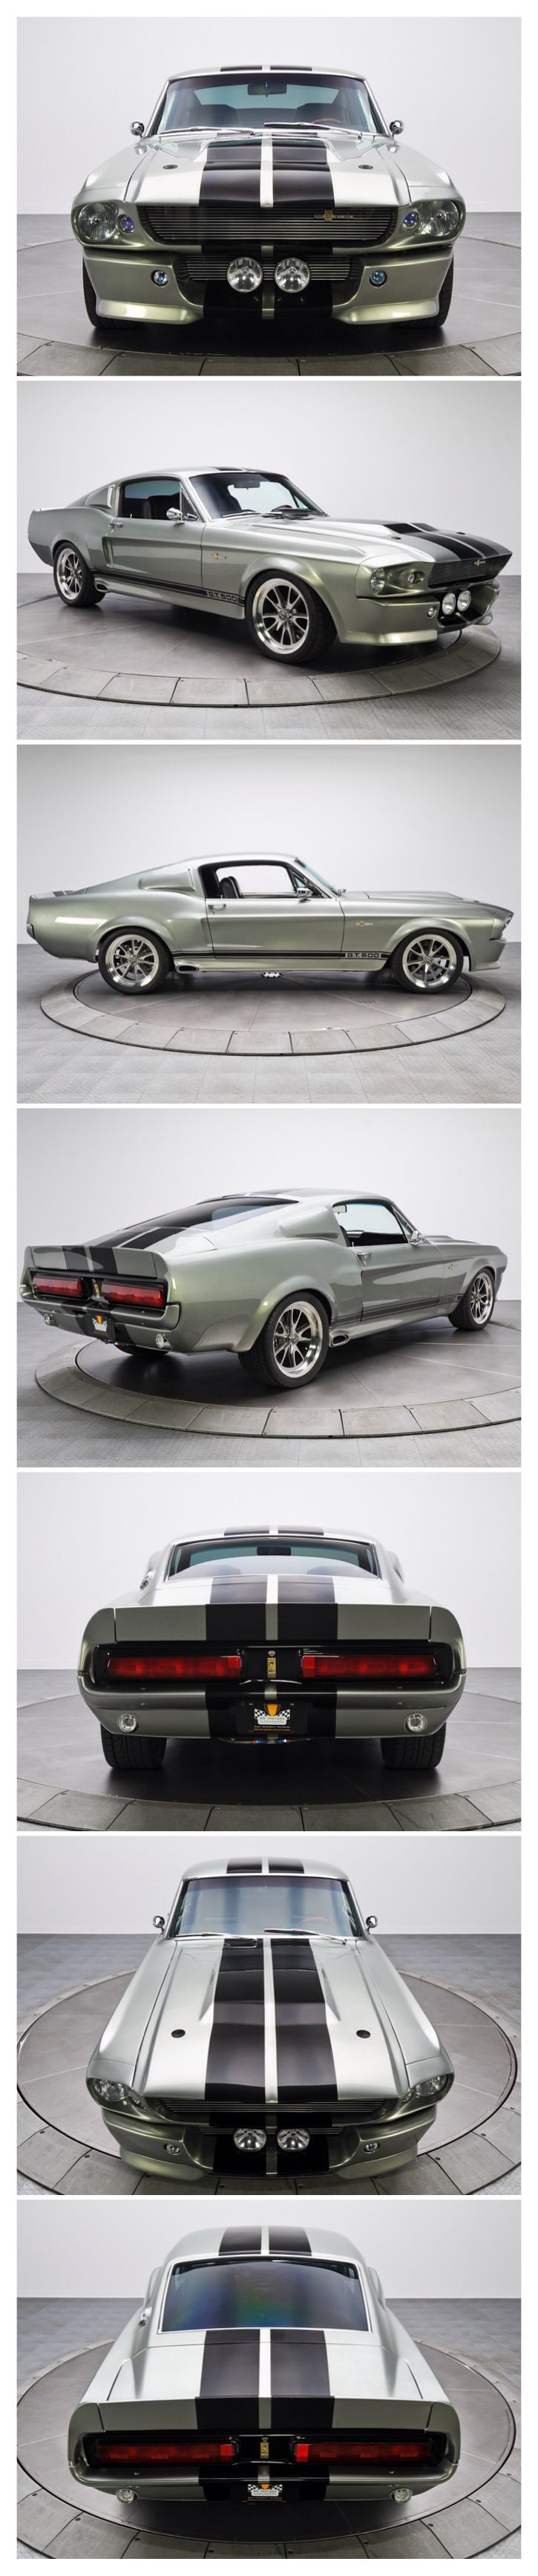 1967 Ford Shelby Mustang GT500 ELEANOR: Original Movie Car up for Sale One of the original 1967 Mustang Shelby GT500 Eleanor that starred inu2026